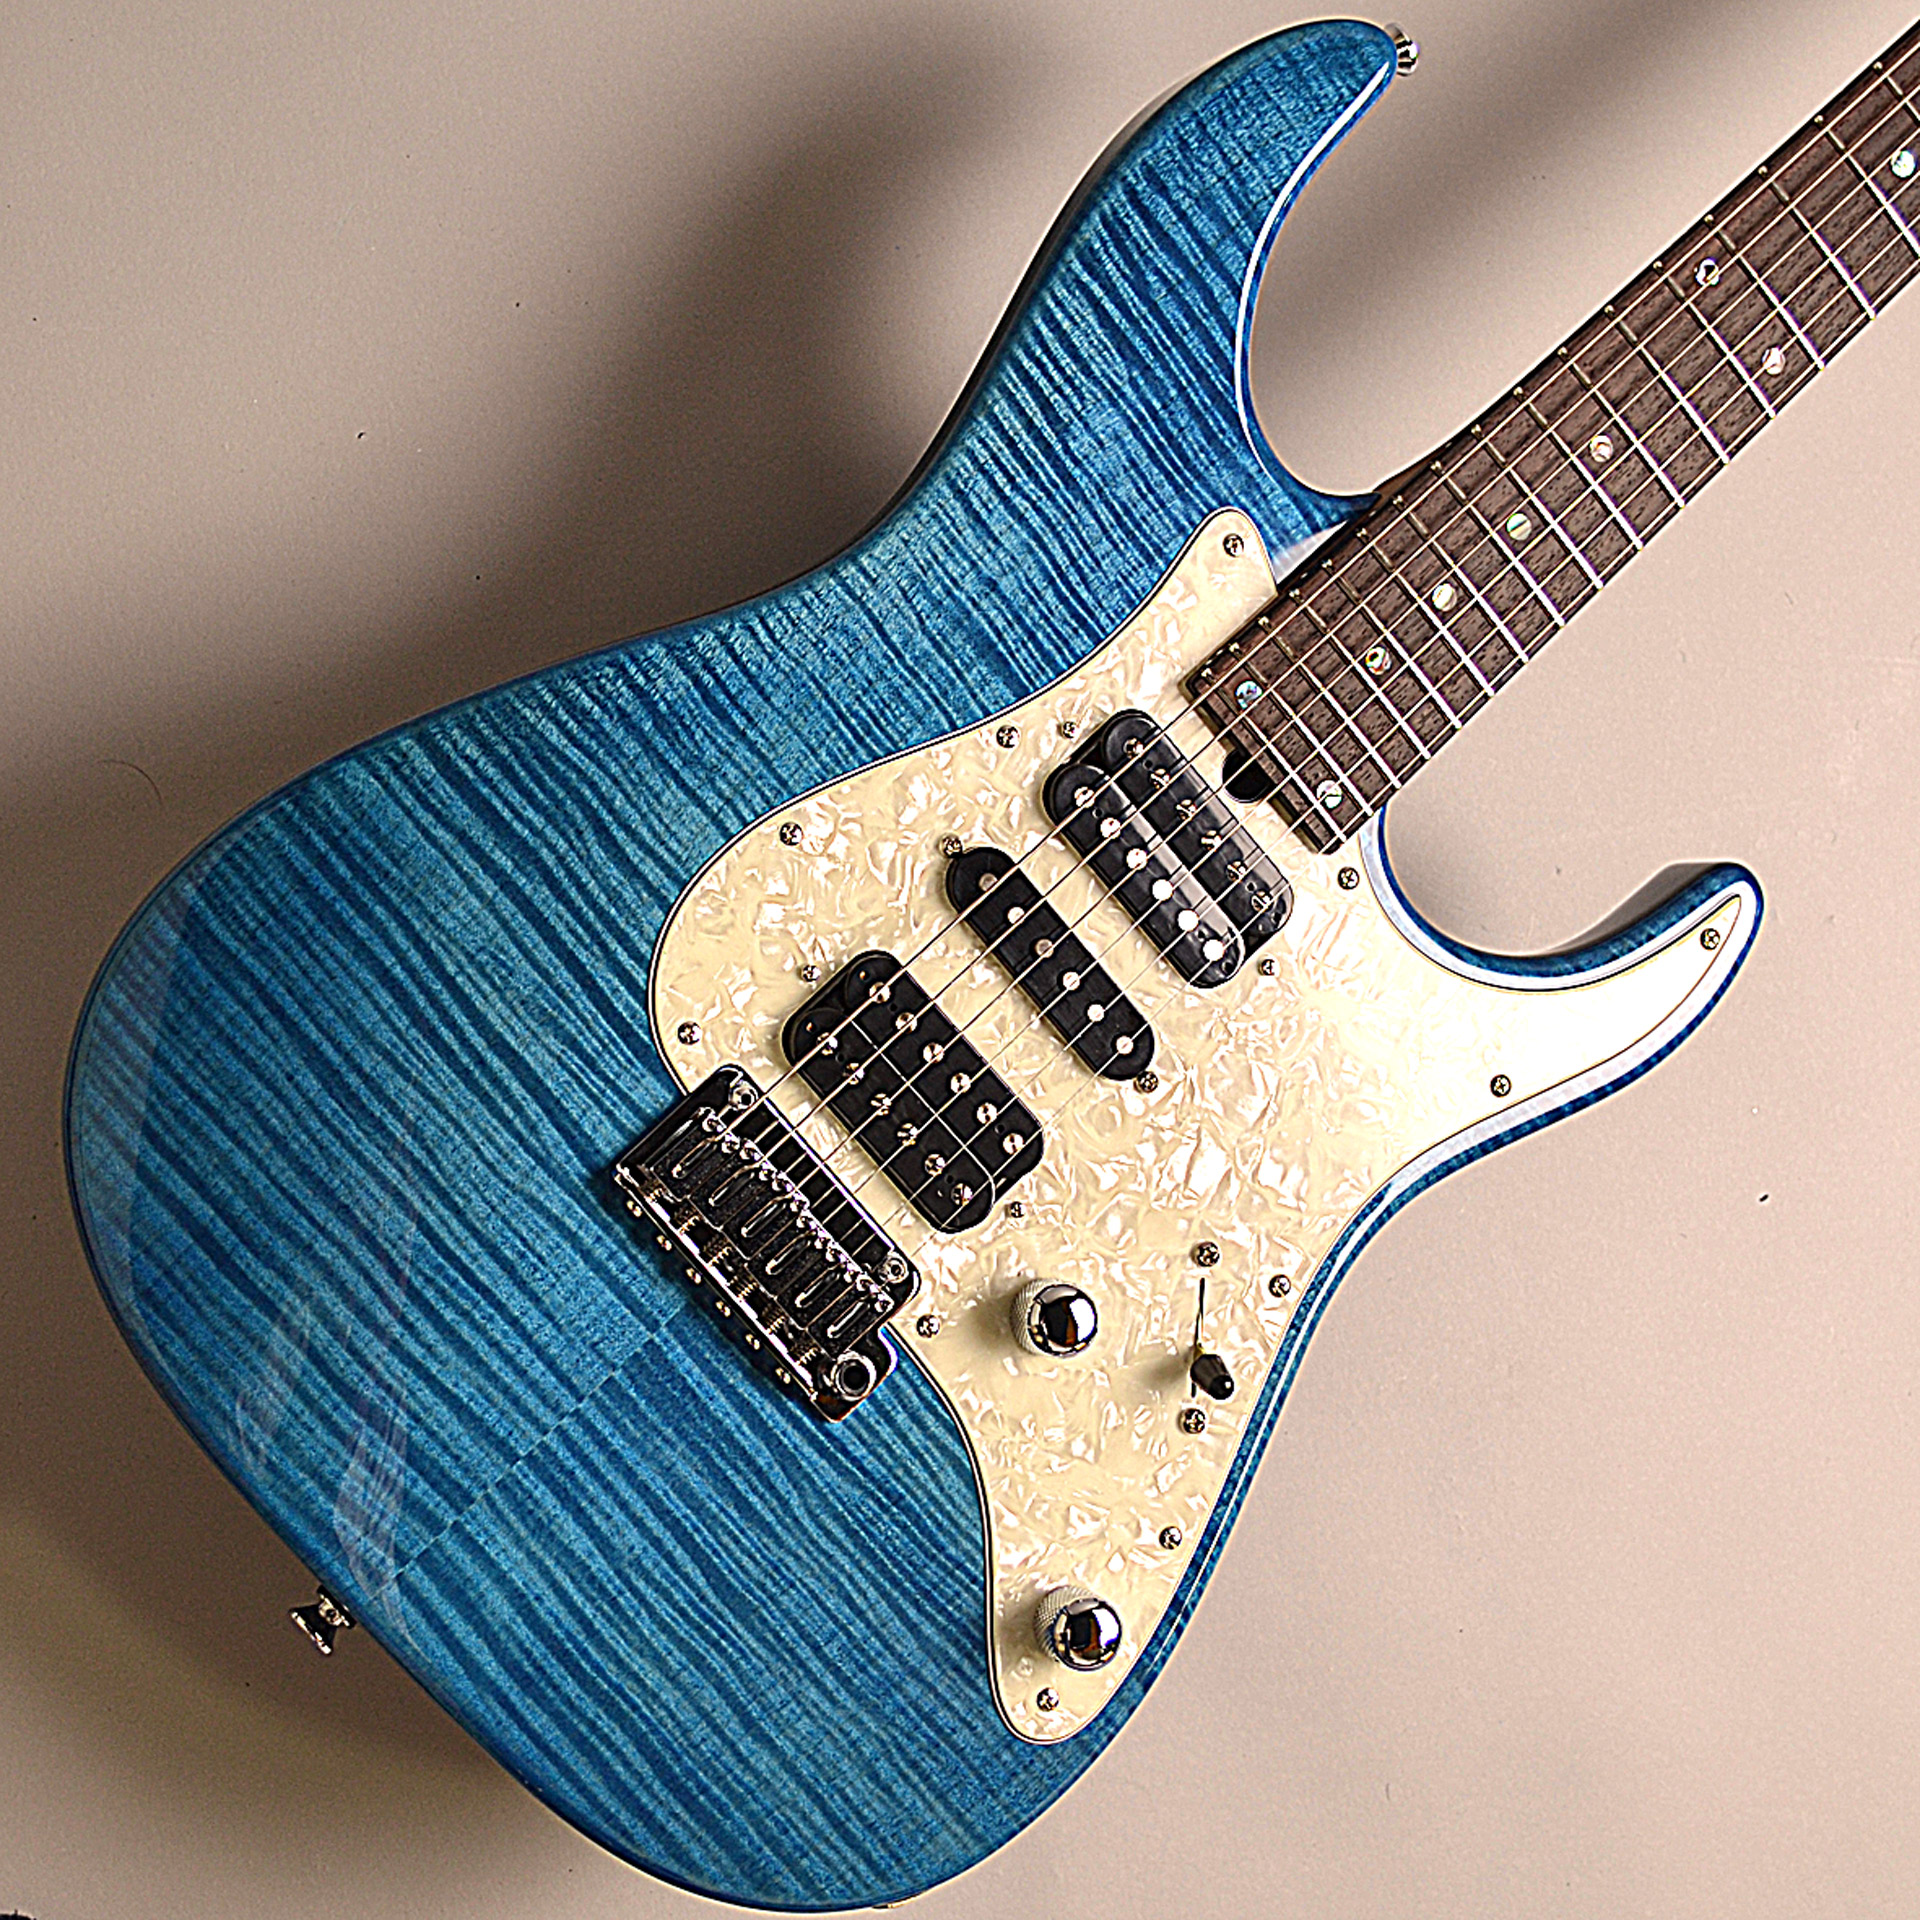 DST-Classic24F Roasted Flame Maple Neckのボディバック-アップ画像